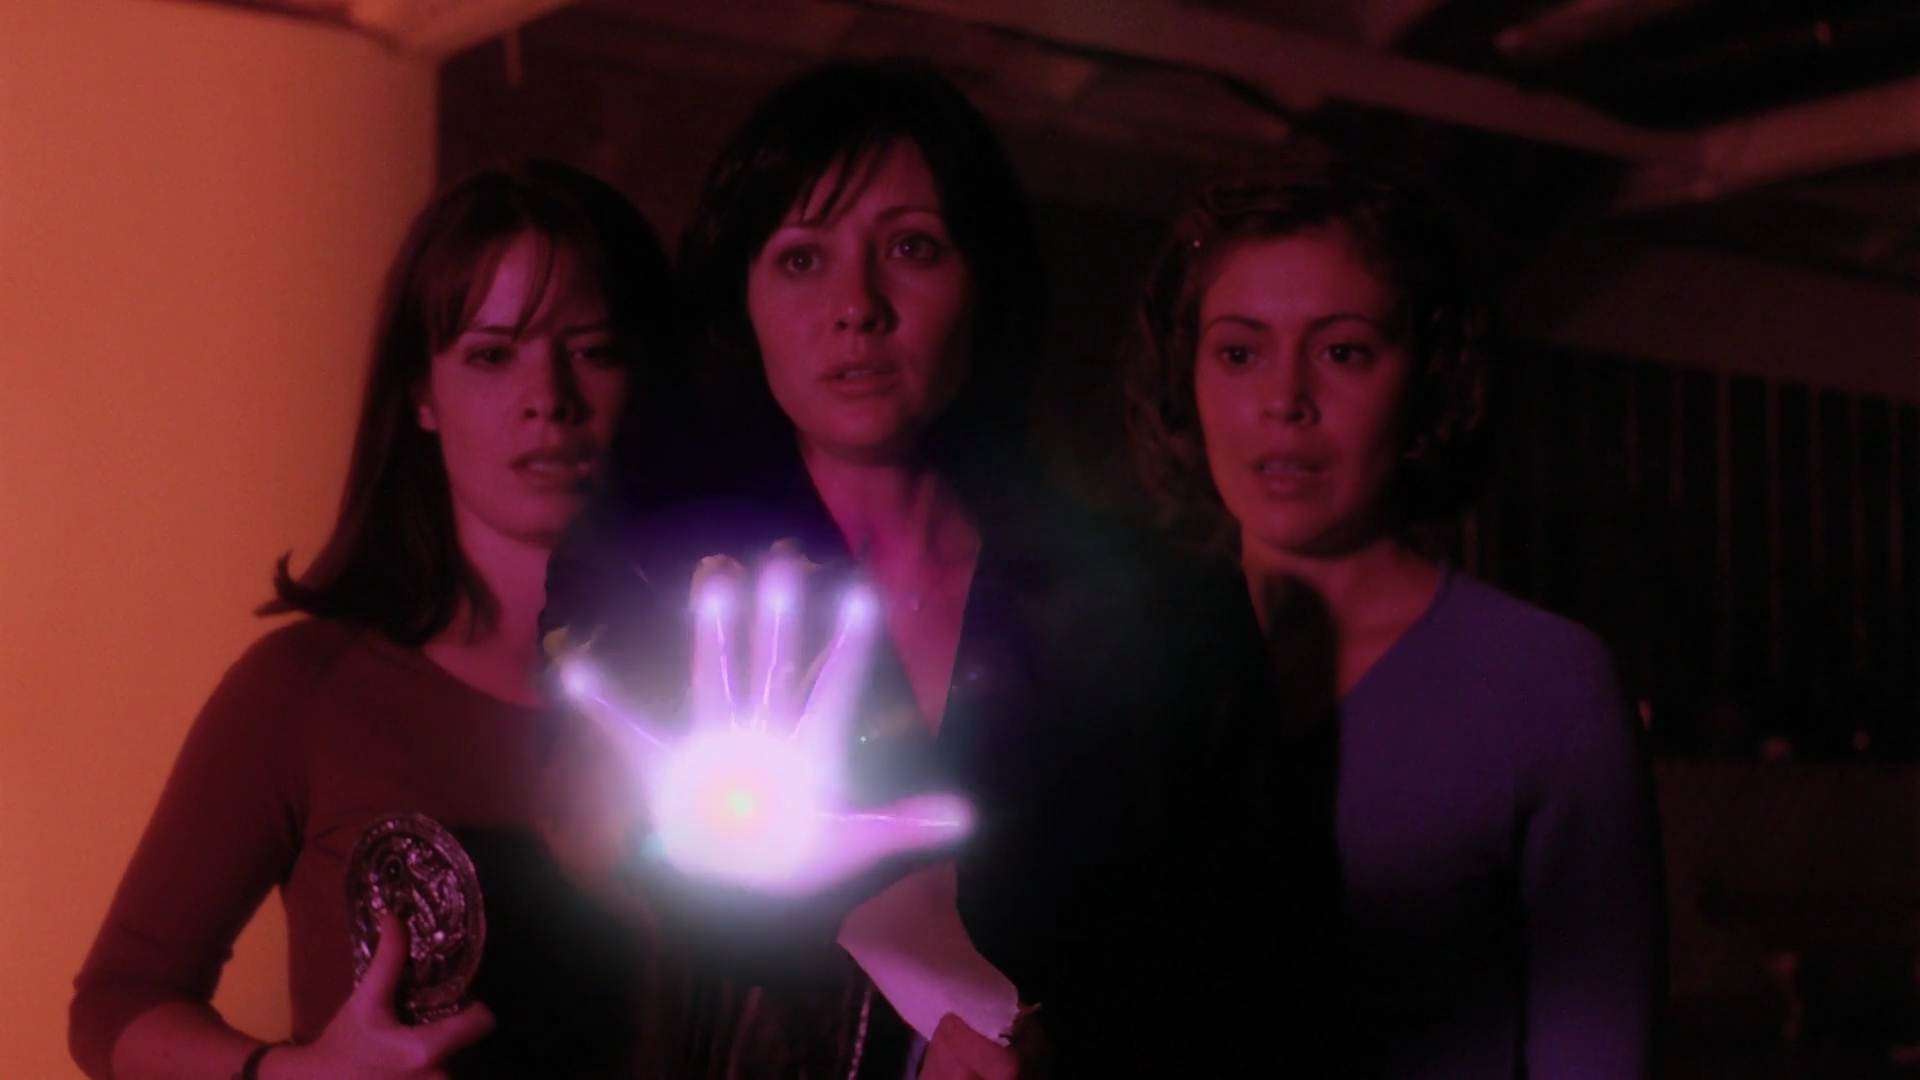 Piper, Prue and Phoebe in Charmed